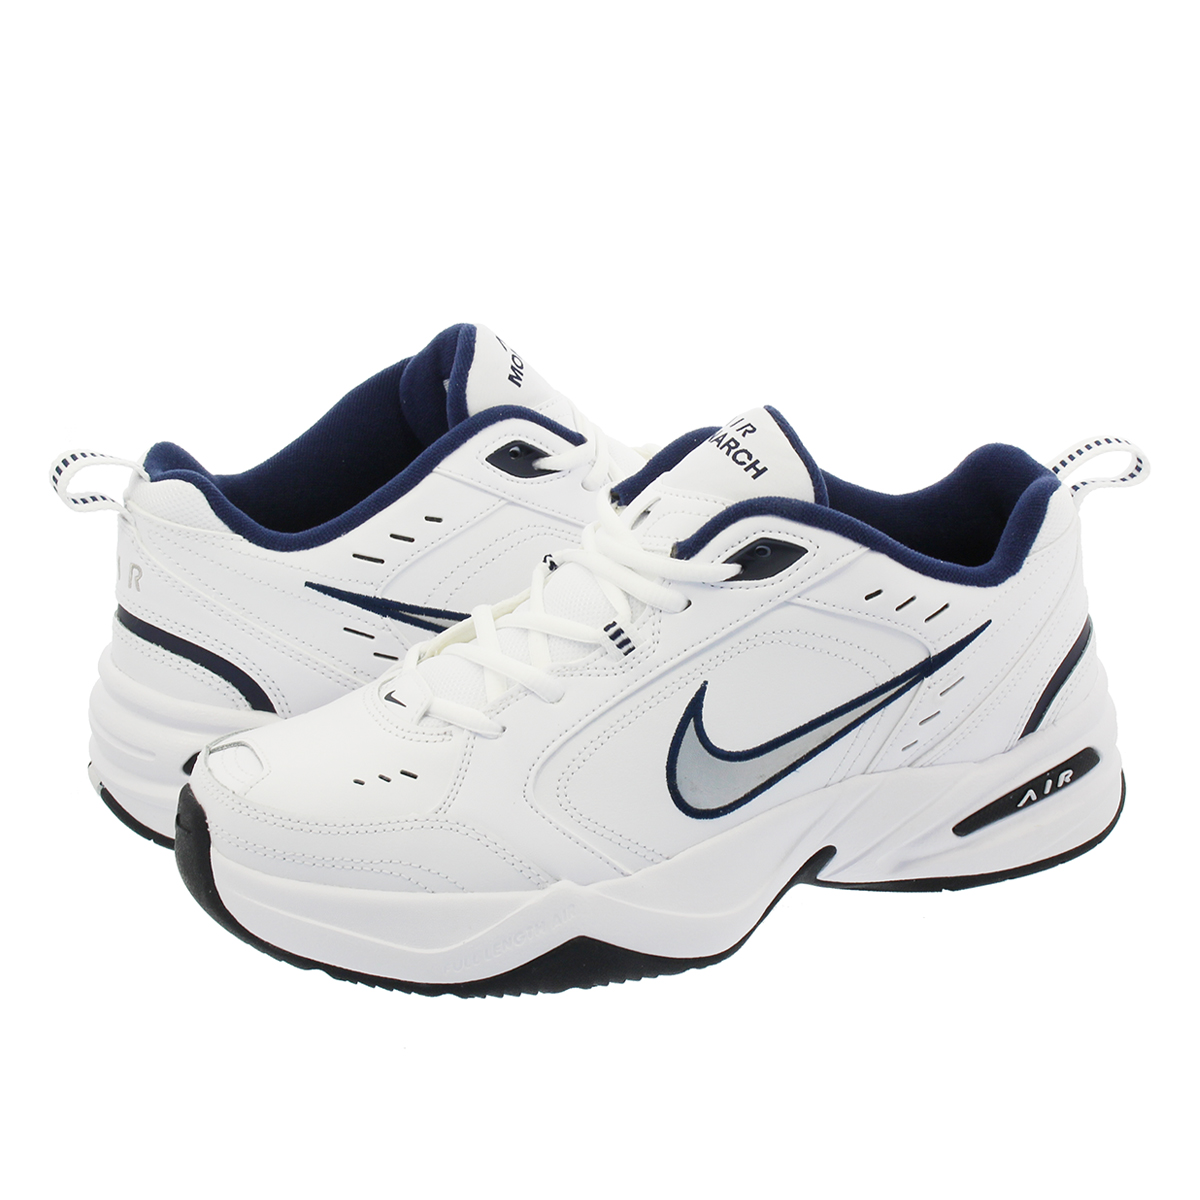 cacc79dd4974 SELECT SHOP LOWTEX  NIKE AIR MONARCH IV ナイキエアモナーク 4 WHITE ...